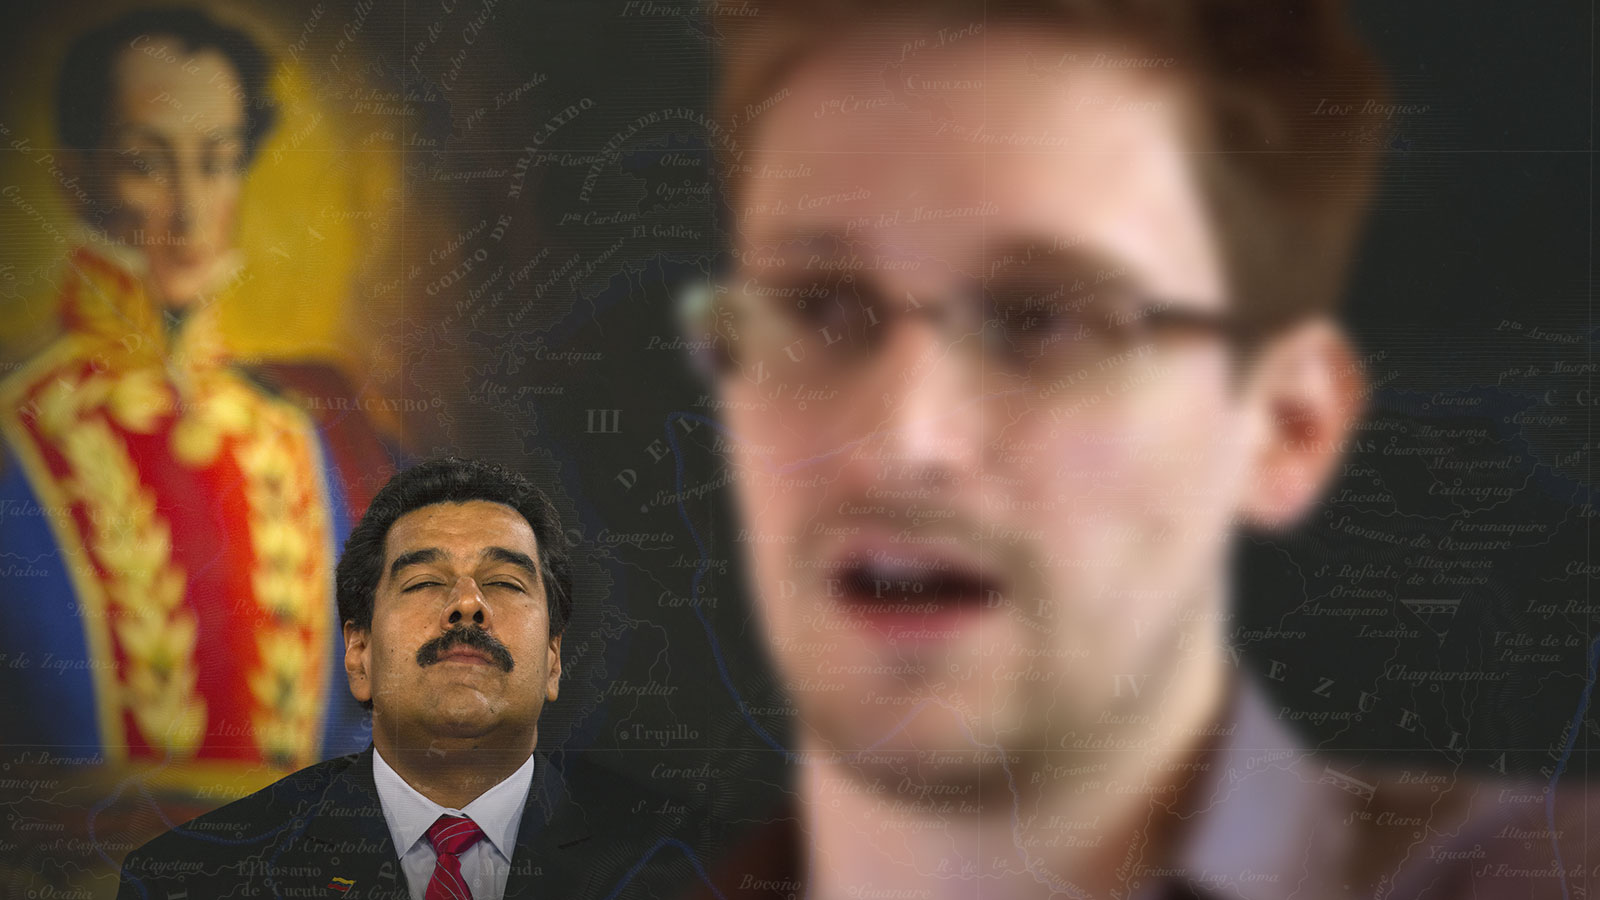 Snowden and Venezuela: My bizarre experience in the surveillance state